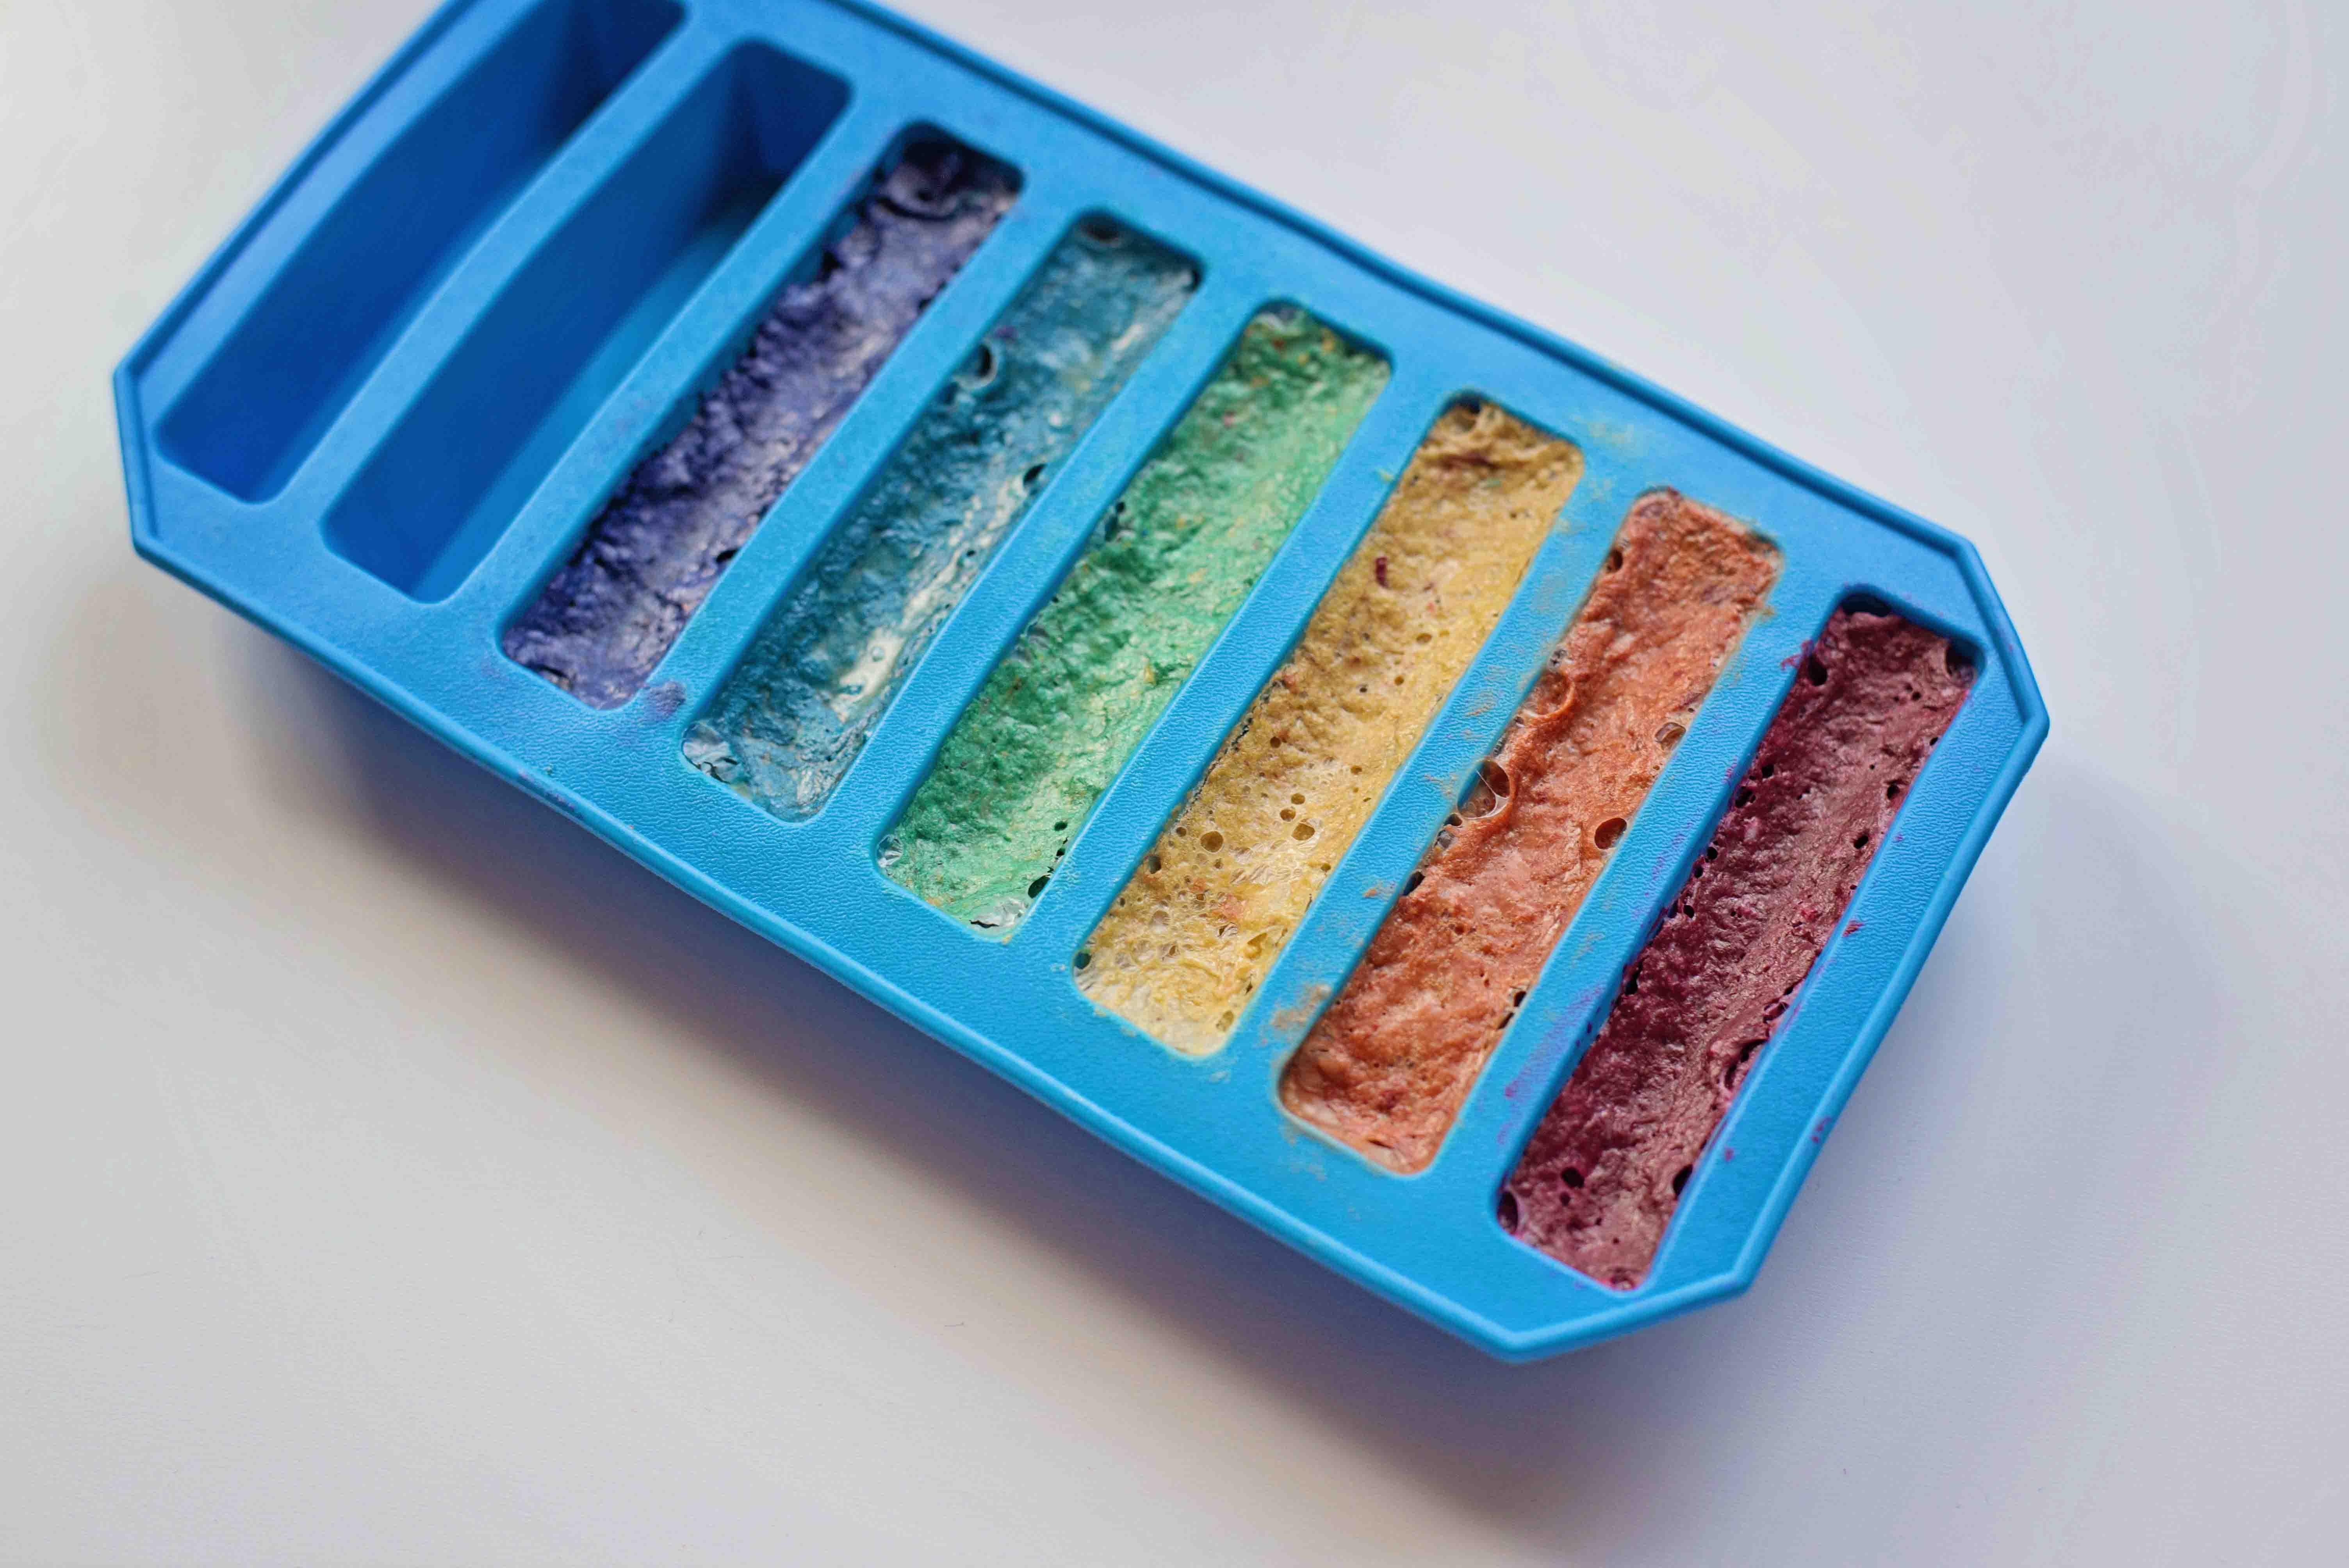 DIY Scented Beeswax Crayons, a great gift or stocking stuffer to make for your kids this Christmas!